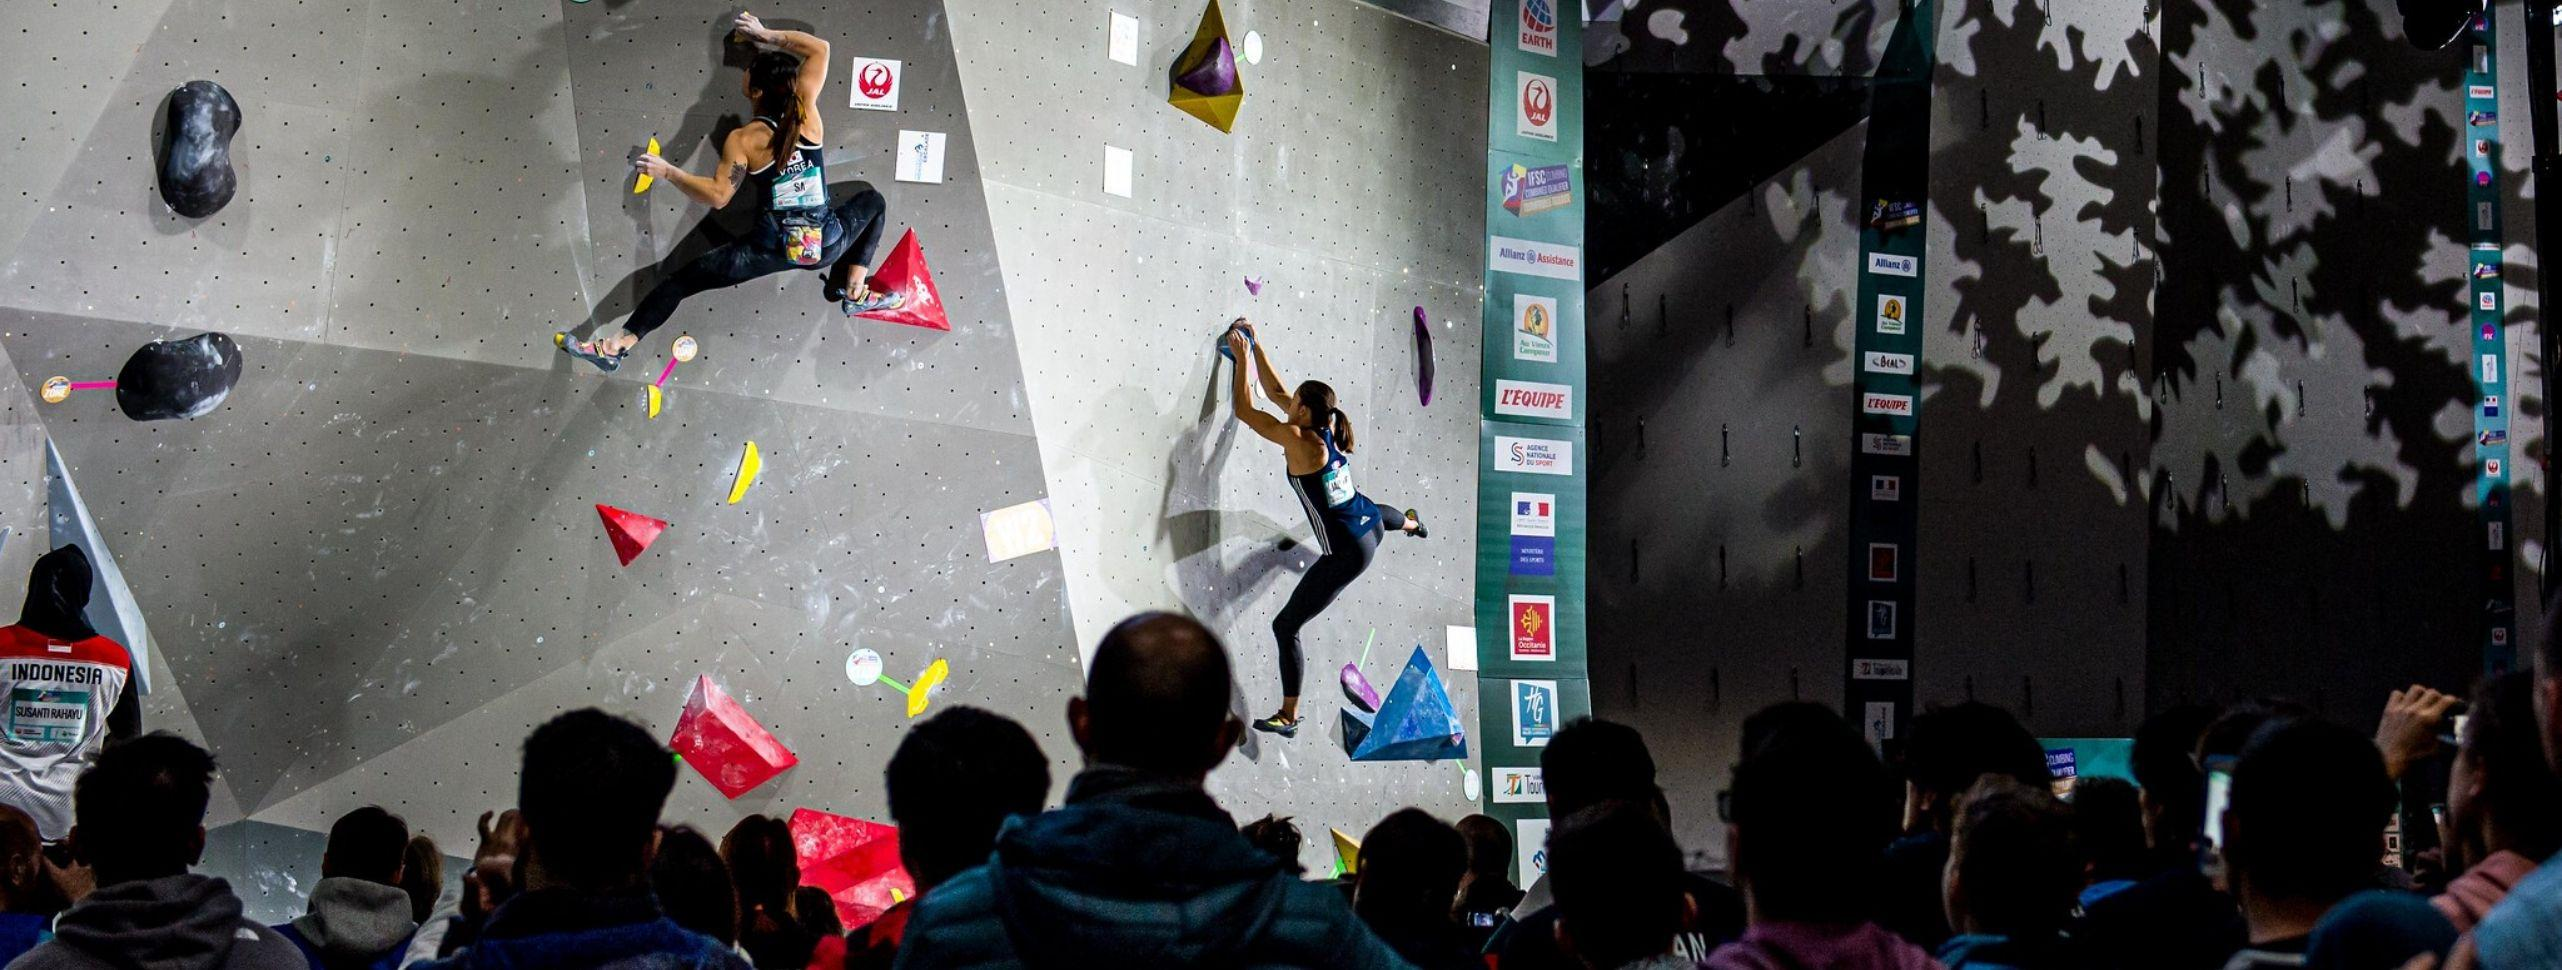 IFSC Calendar 2020: Soaring to New Heights